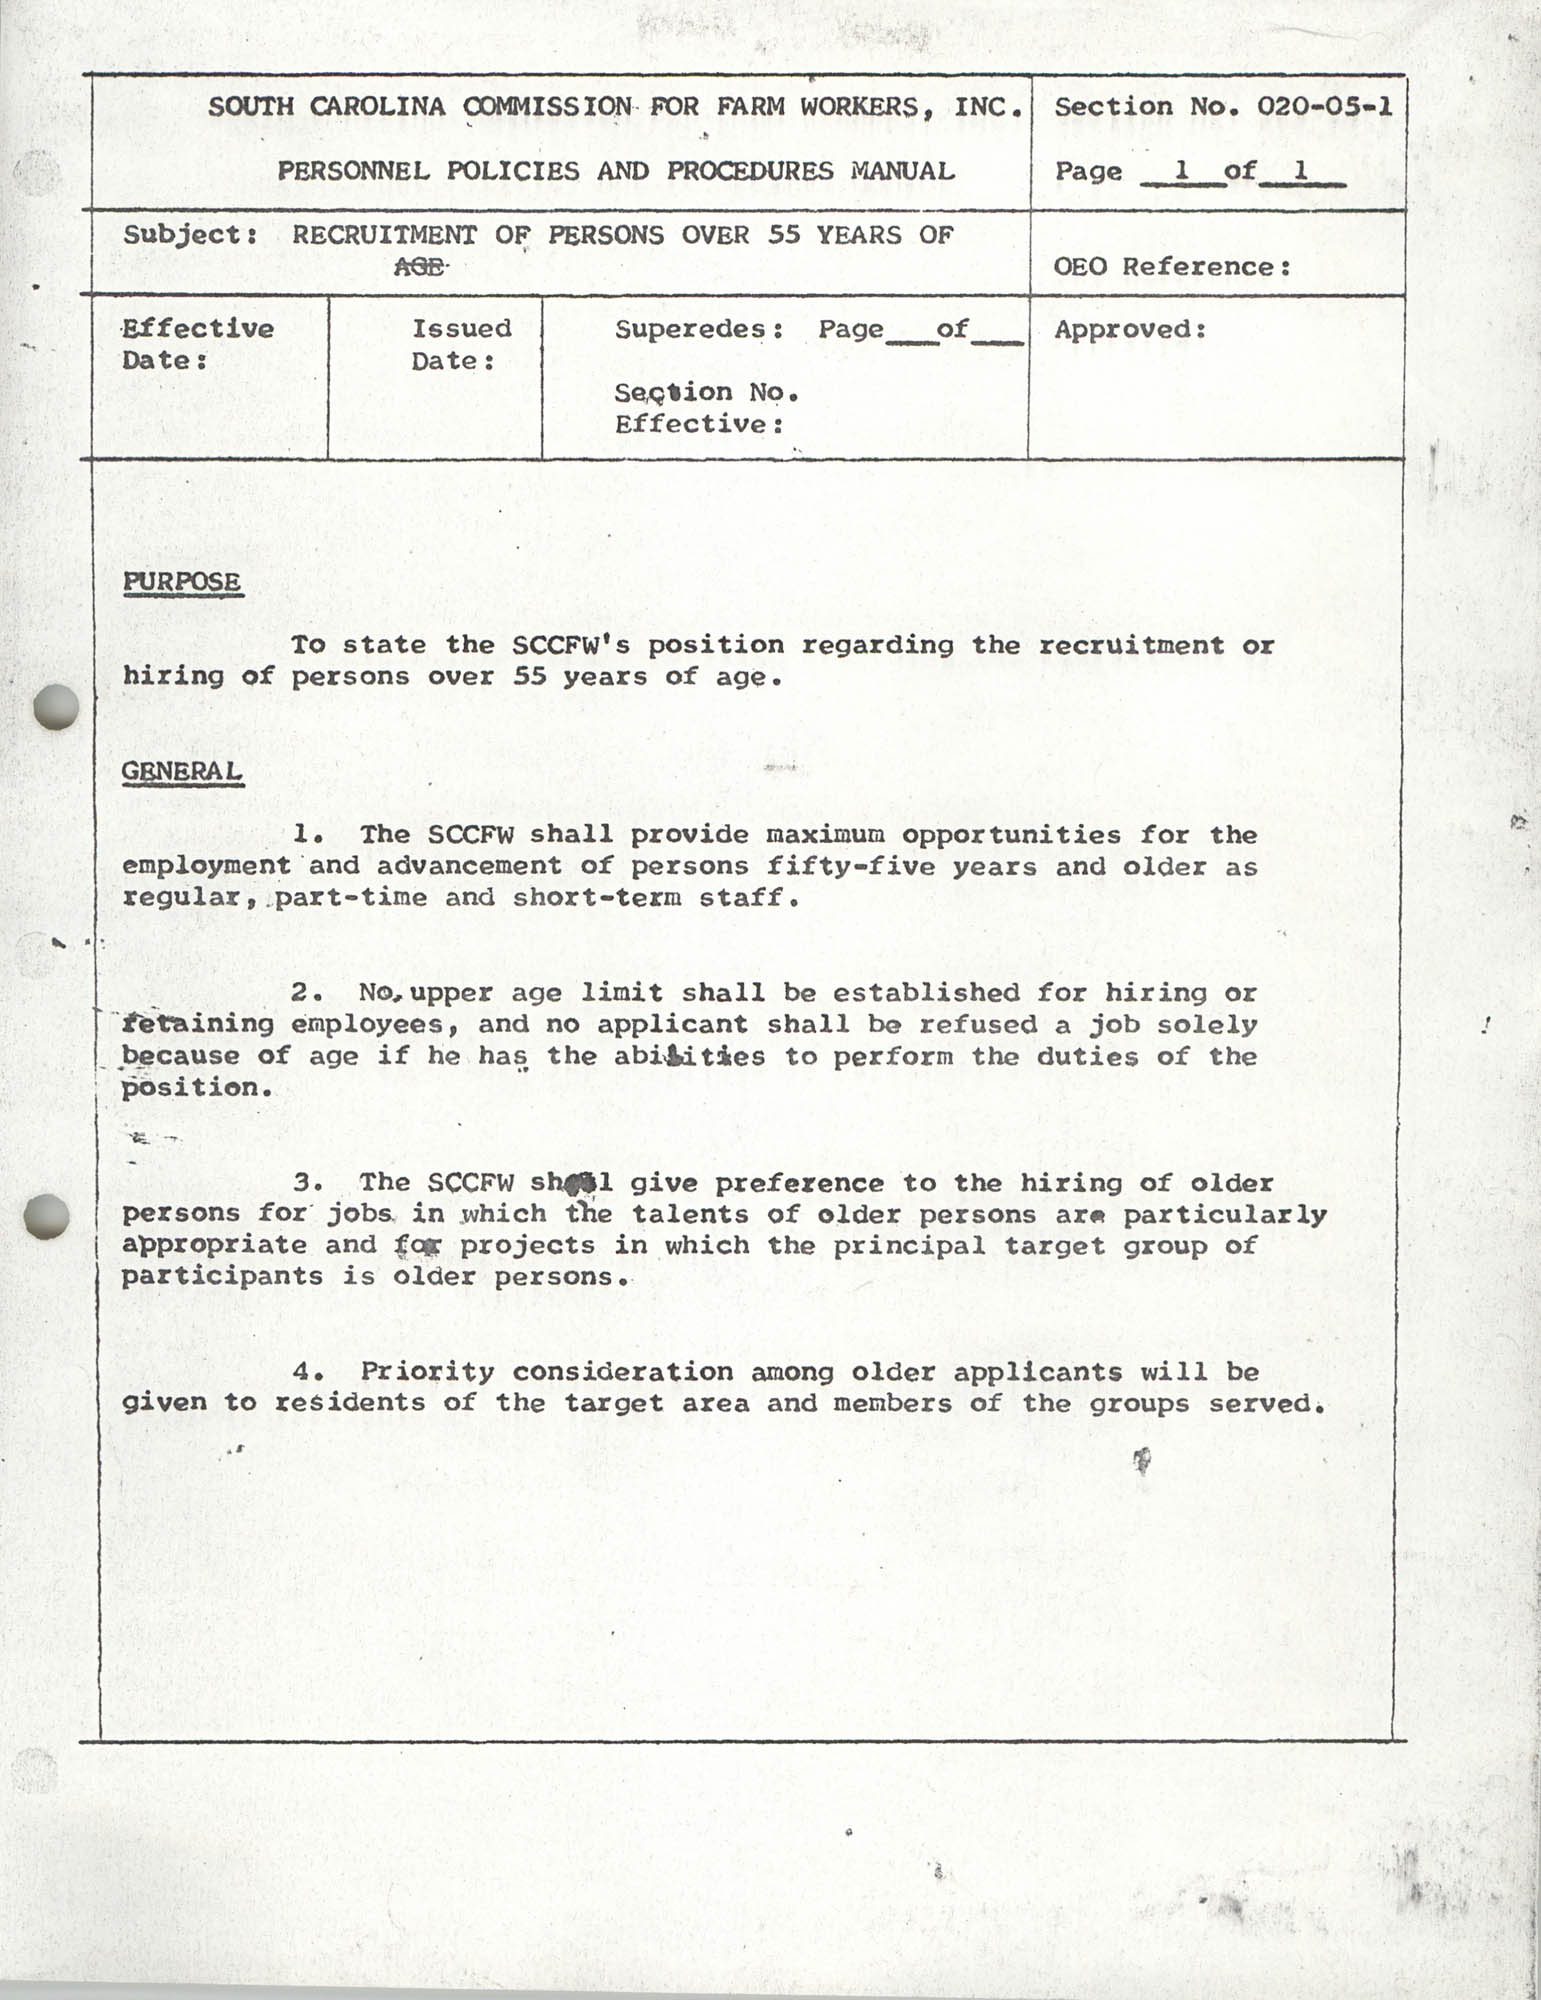 Personnel Policies and Procedures Manual, Section No. 020-05-1